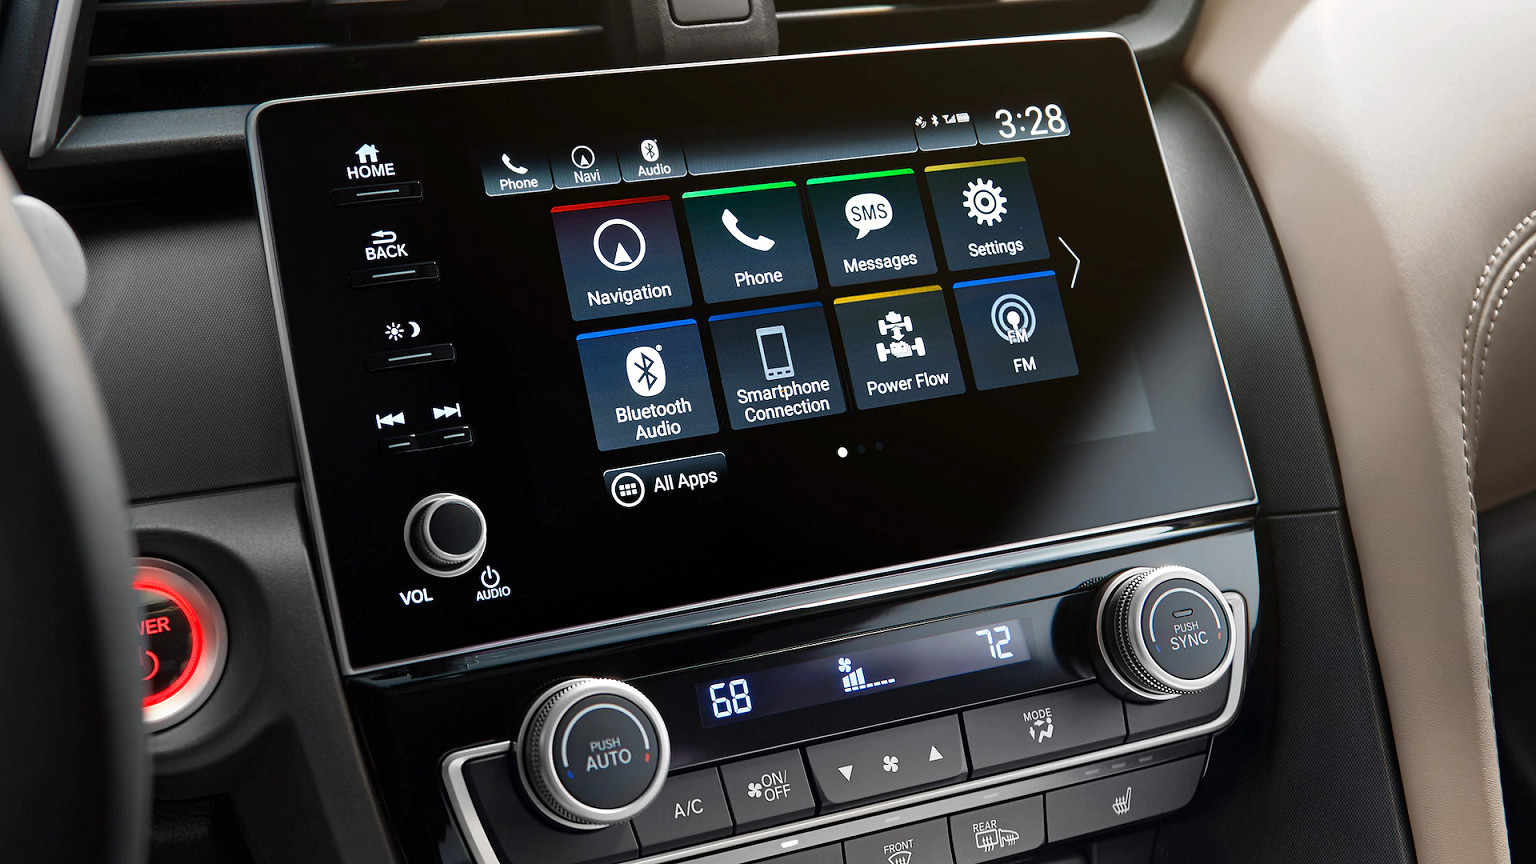 Touchscreen in the 2020 Honda Insight